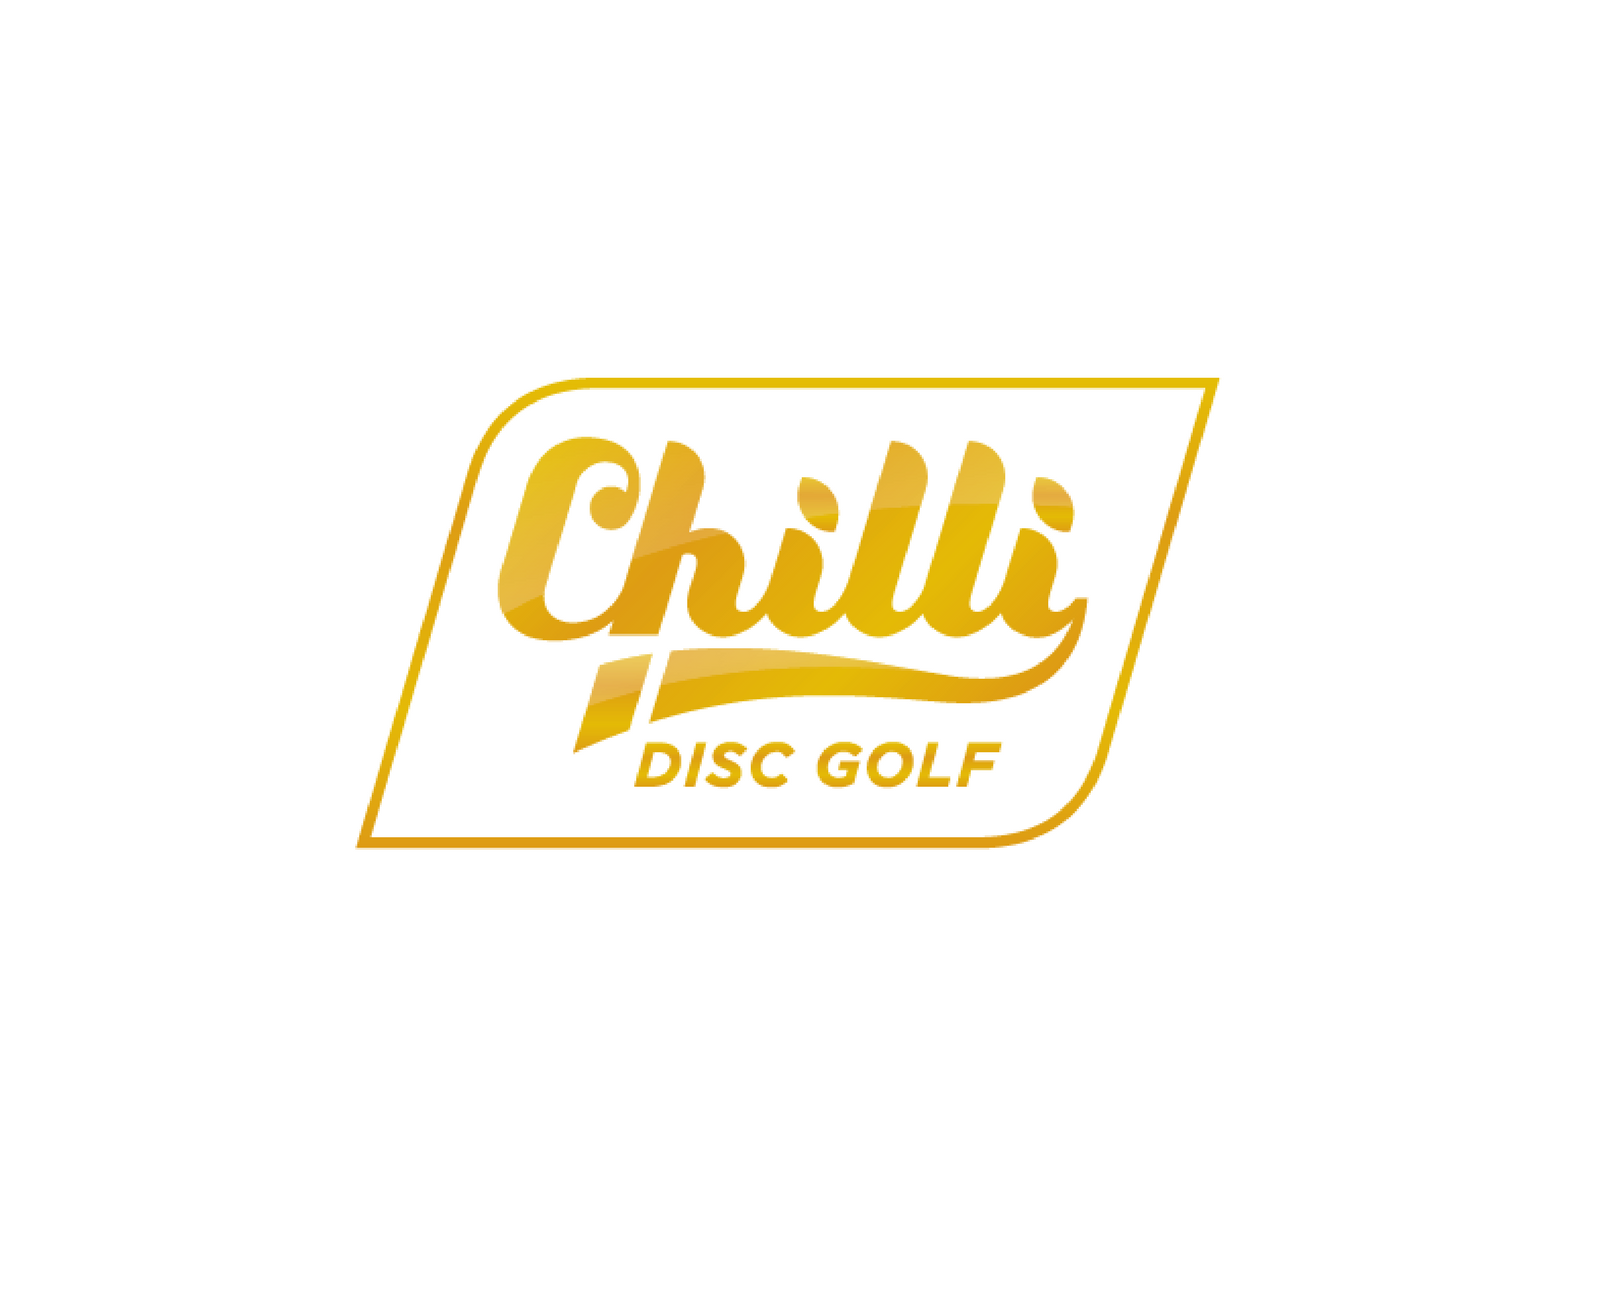 Chilli Disc golf